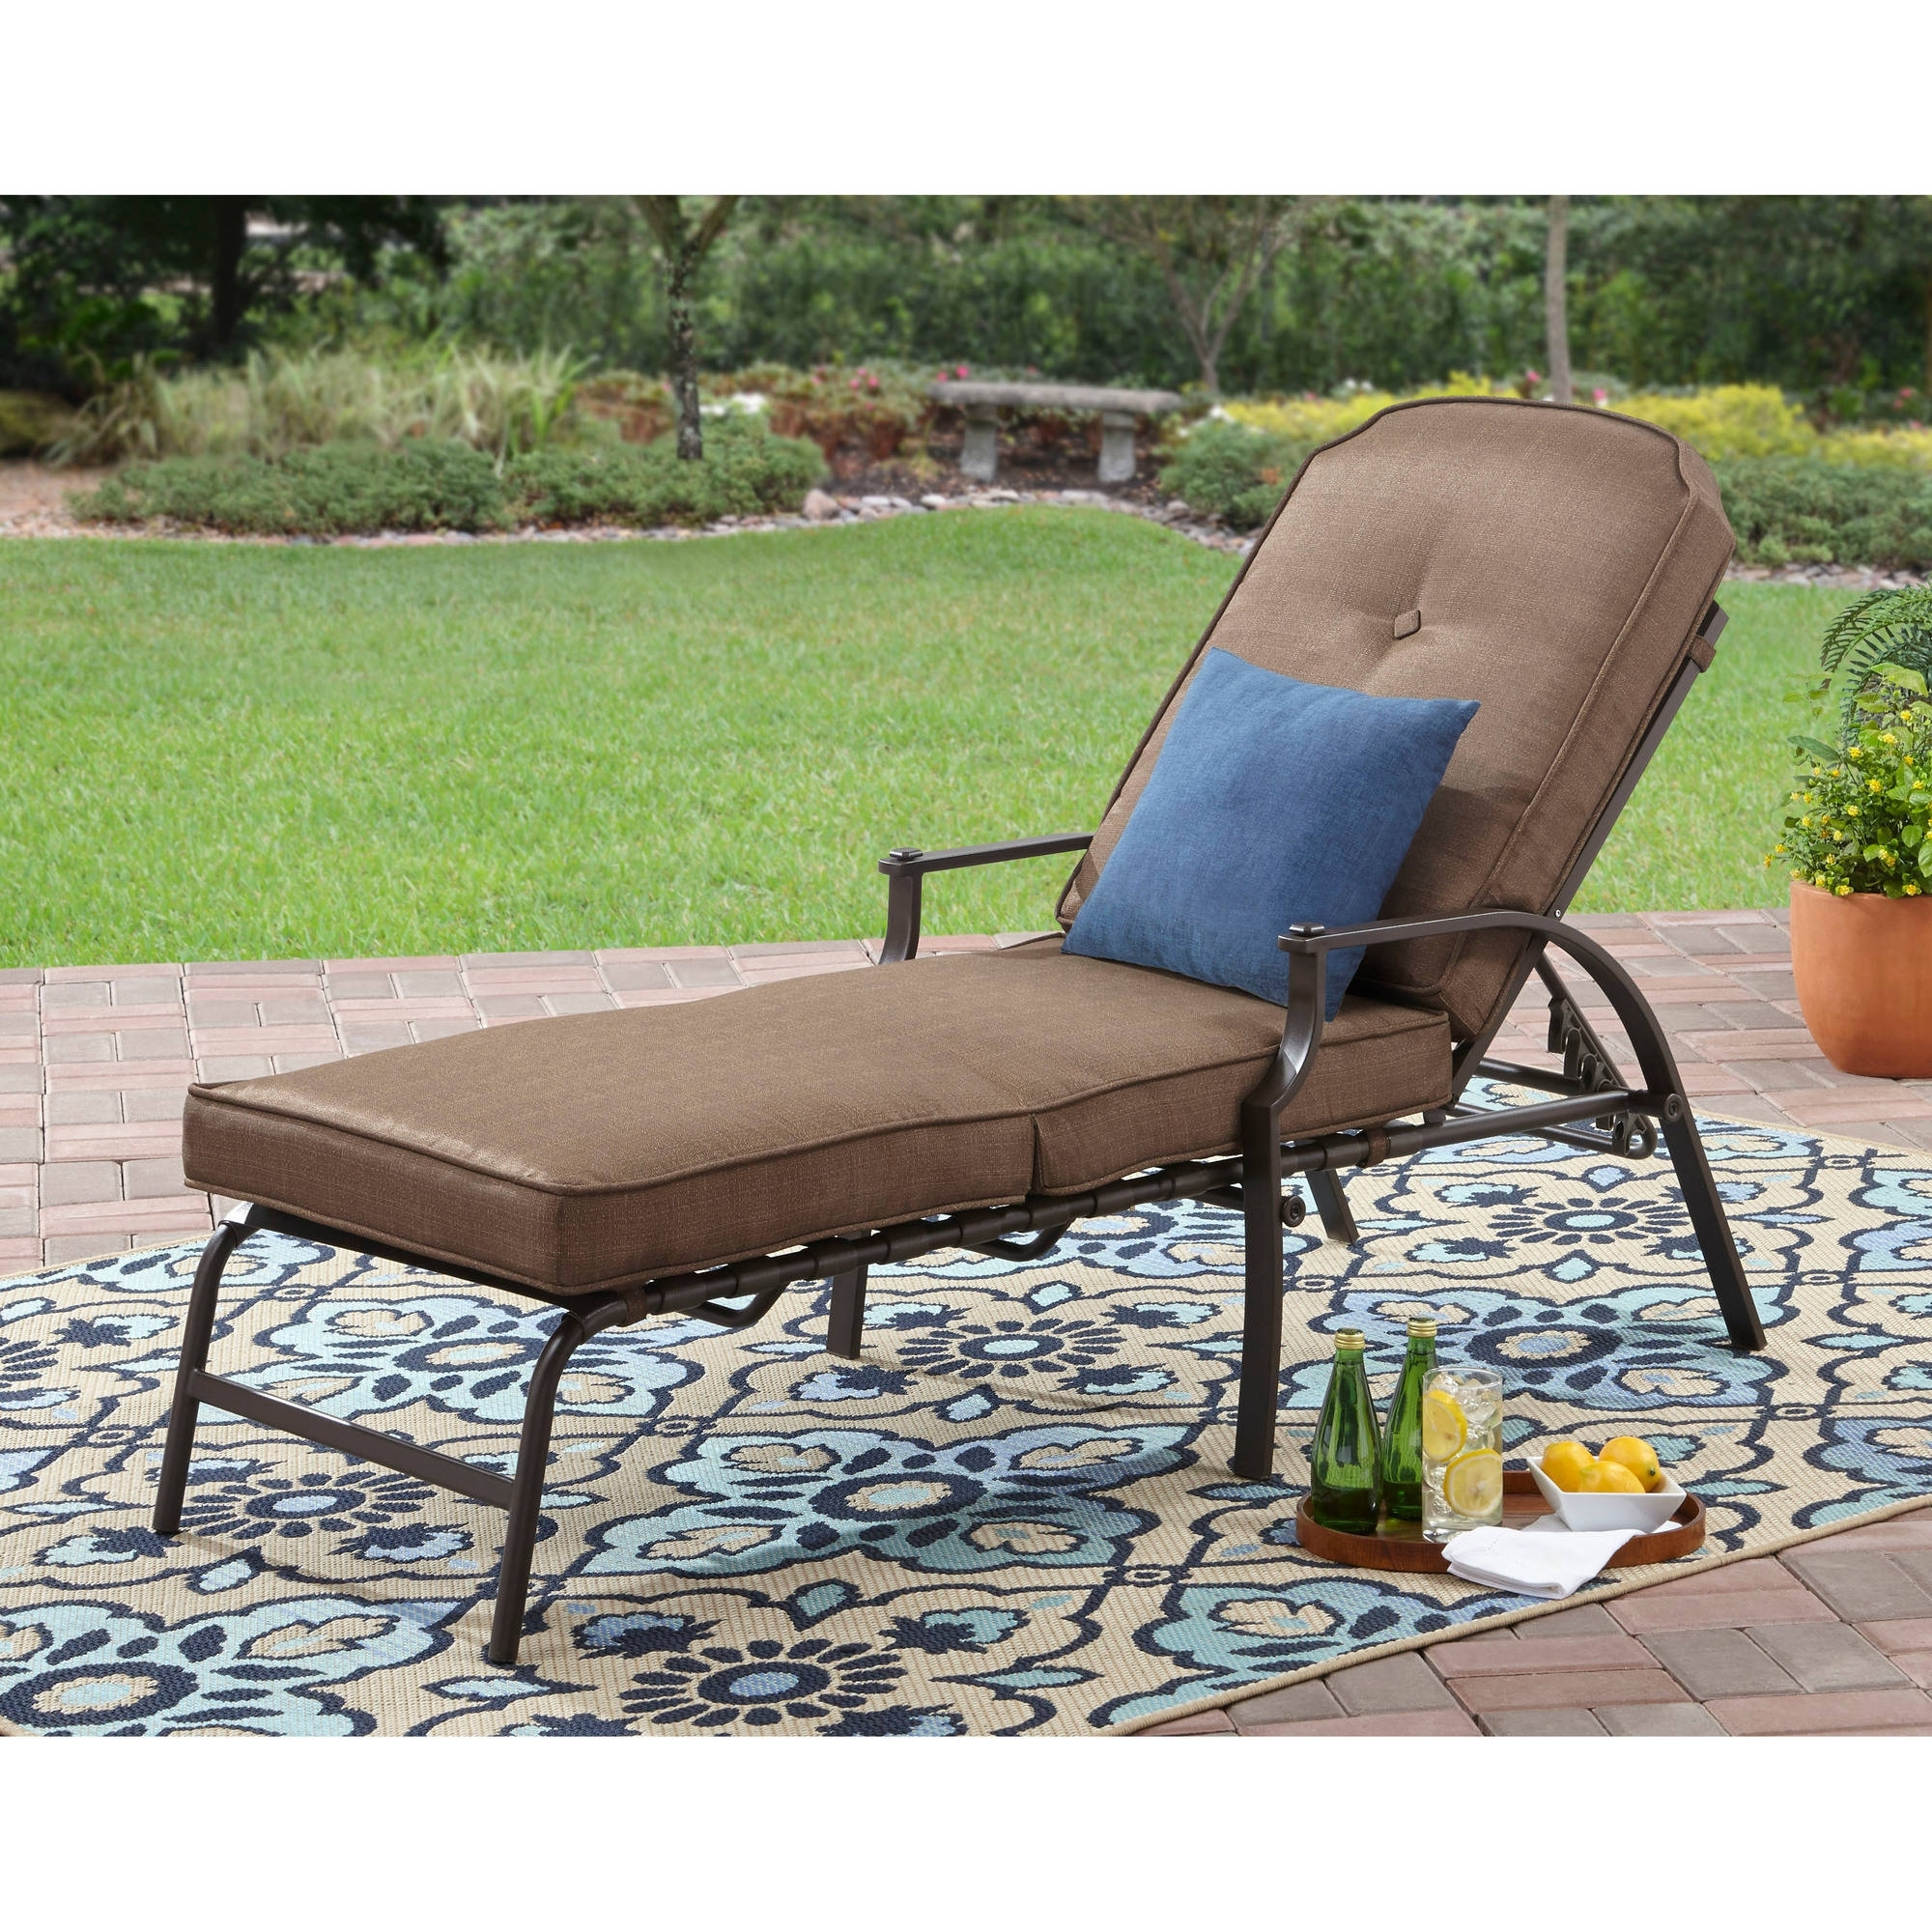 Latest Lounge Chair : Outdoor Sun Tanning Chairs Iron Chaise Lounge Within Adjustable Pool Chaise Lounge Chair Recliners (View 6 of 15)